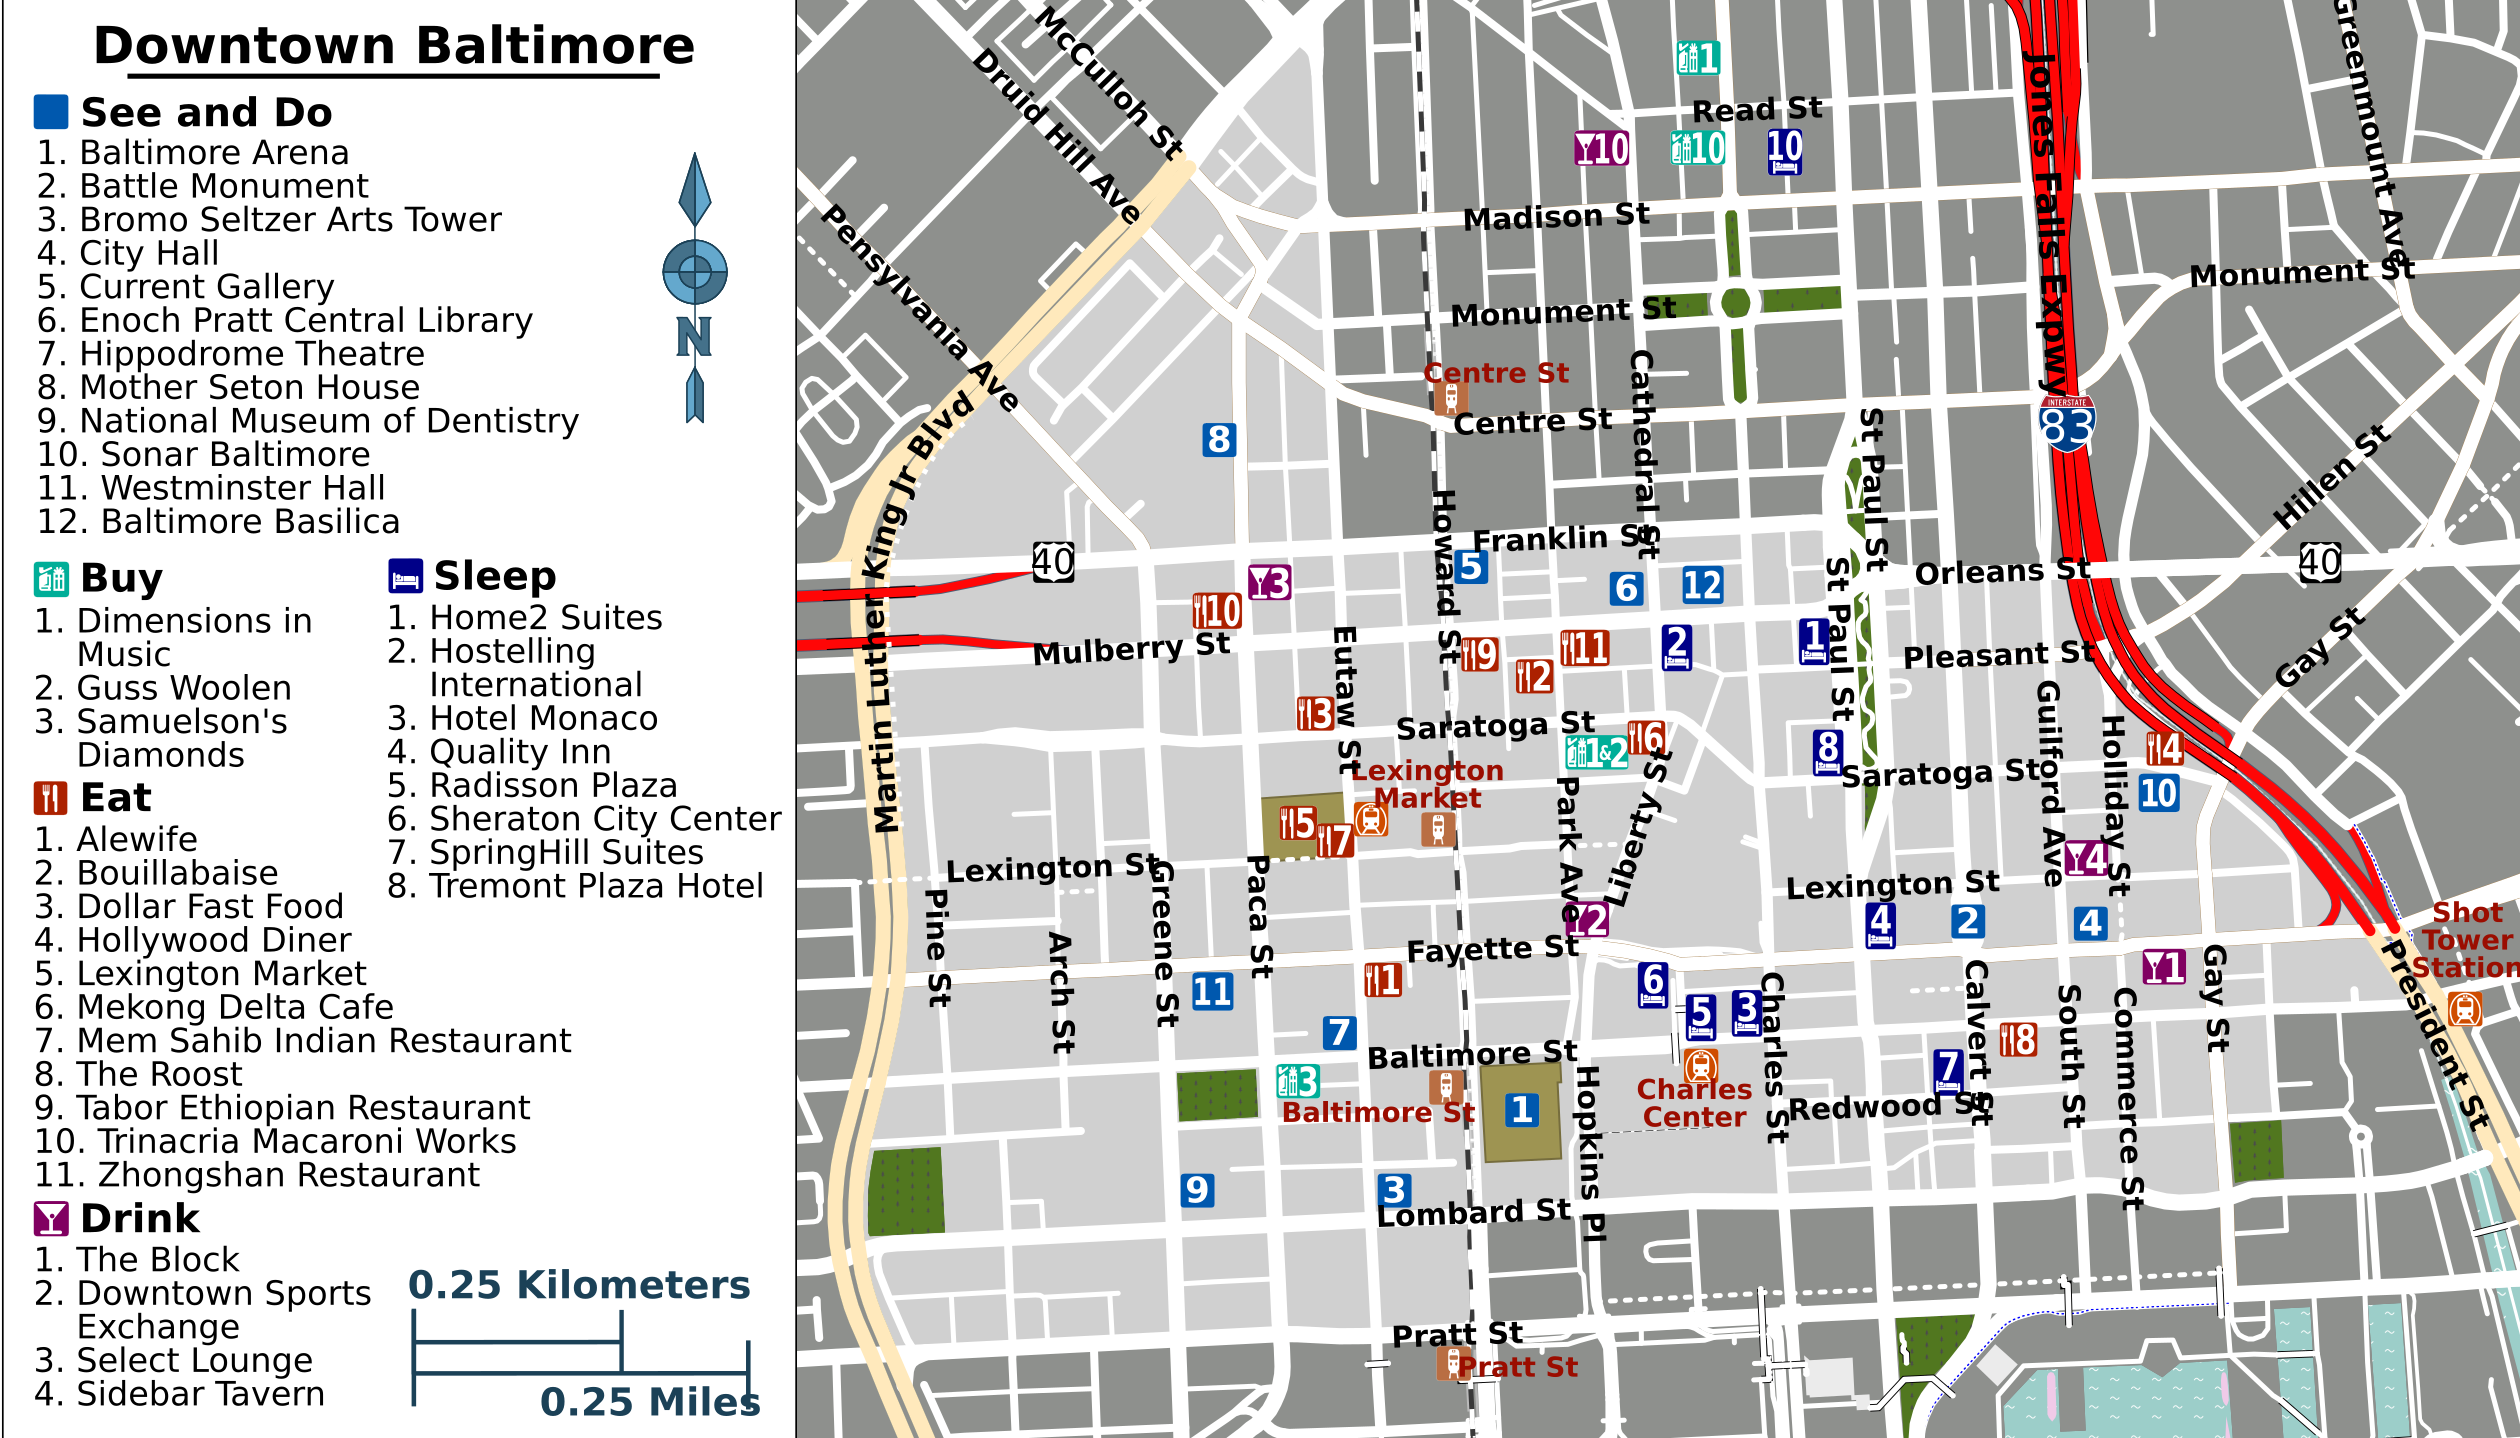 Downtown Baltimore Map File:Downtown Baltimore map.png   Wikimedia Commons